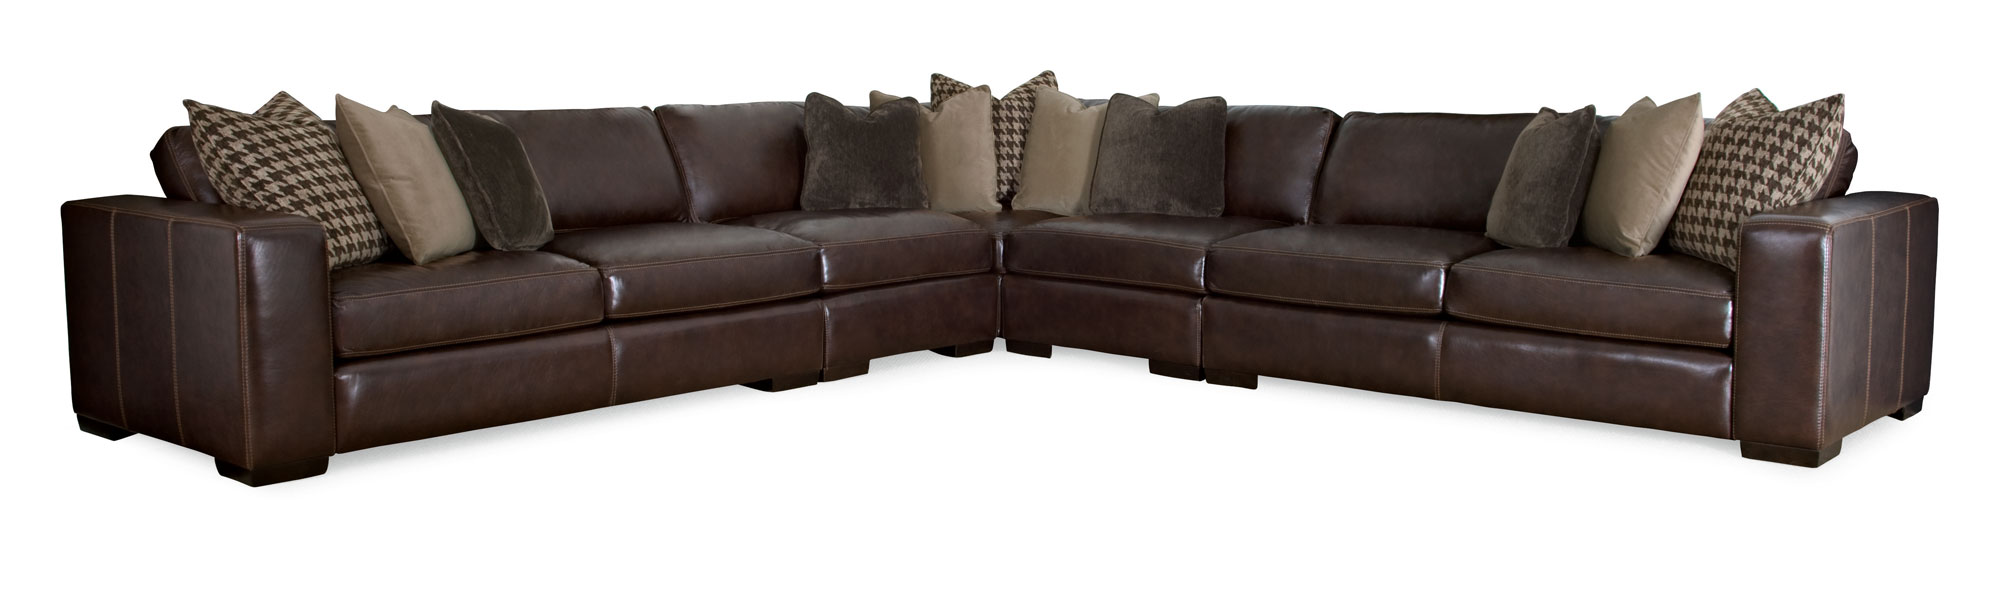 Dorian Sectional  sc 1 st  Bernhardt Furniture Company : leather sectional couch - Sectionals, Sofas & Couches